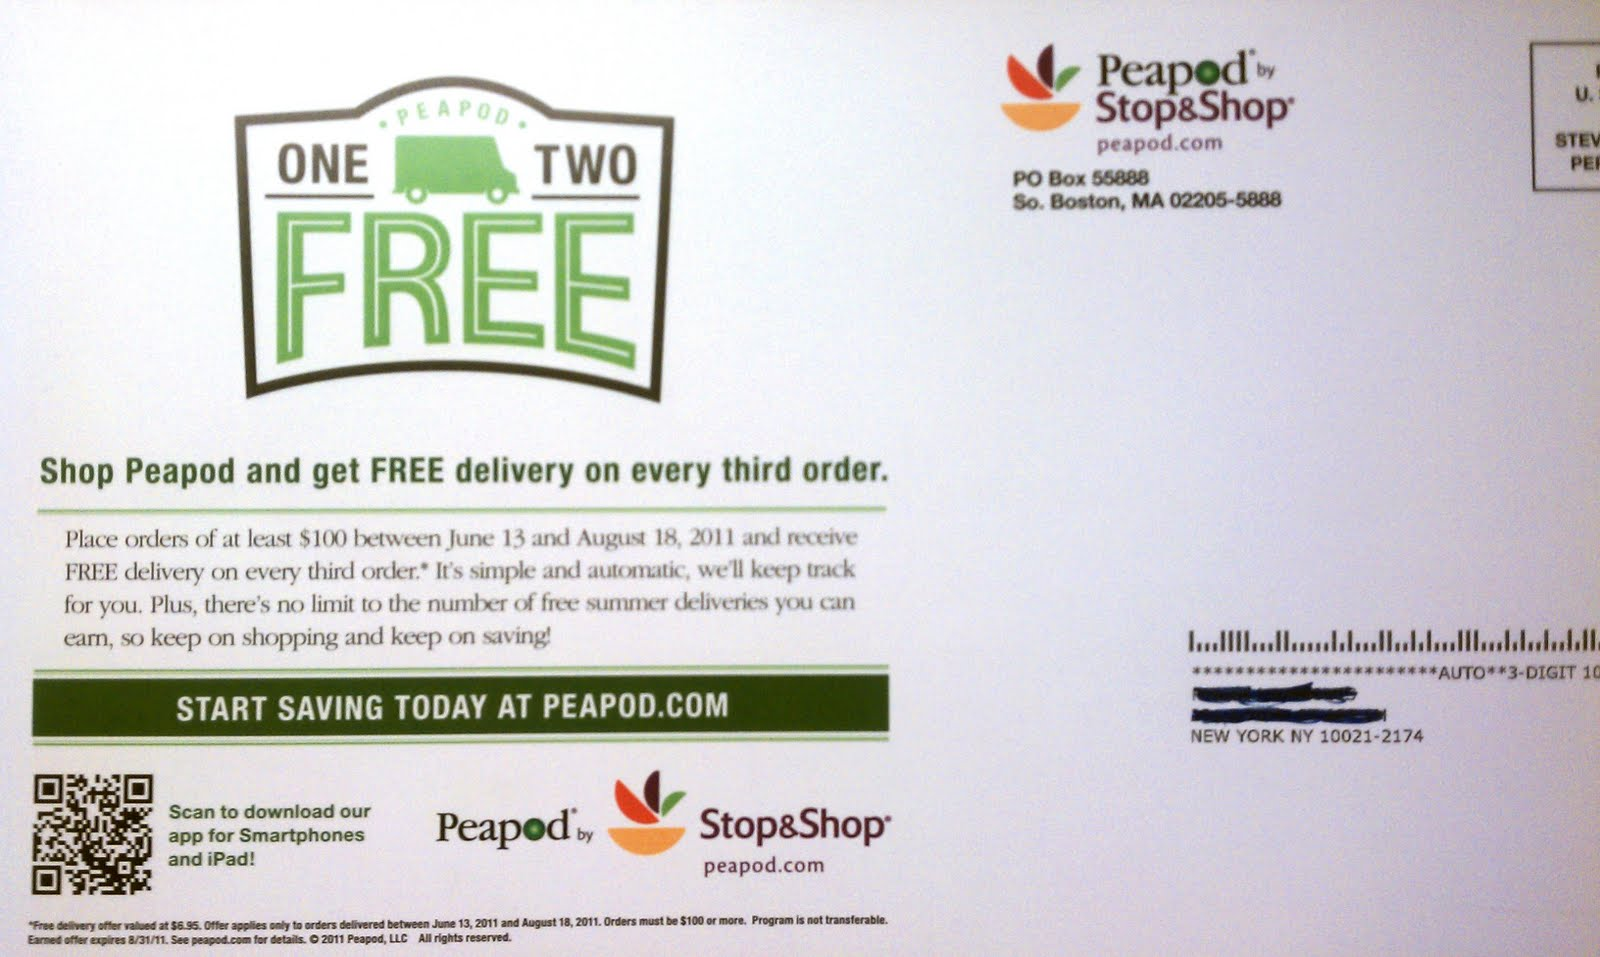 Peapod is smart grocery shopping for busy people. You can order groceries online with free delivery straight to your home or business! Use today's $20 off PeadPod coupon code, coupons and free shipping promo codes along with weekly sales and deals to .